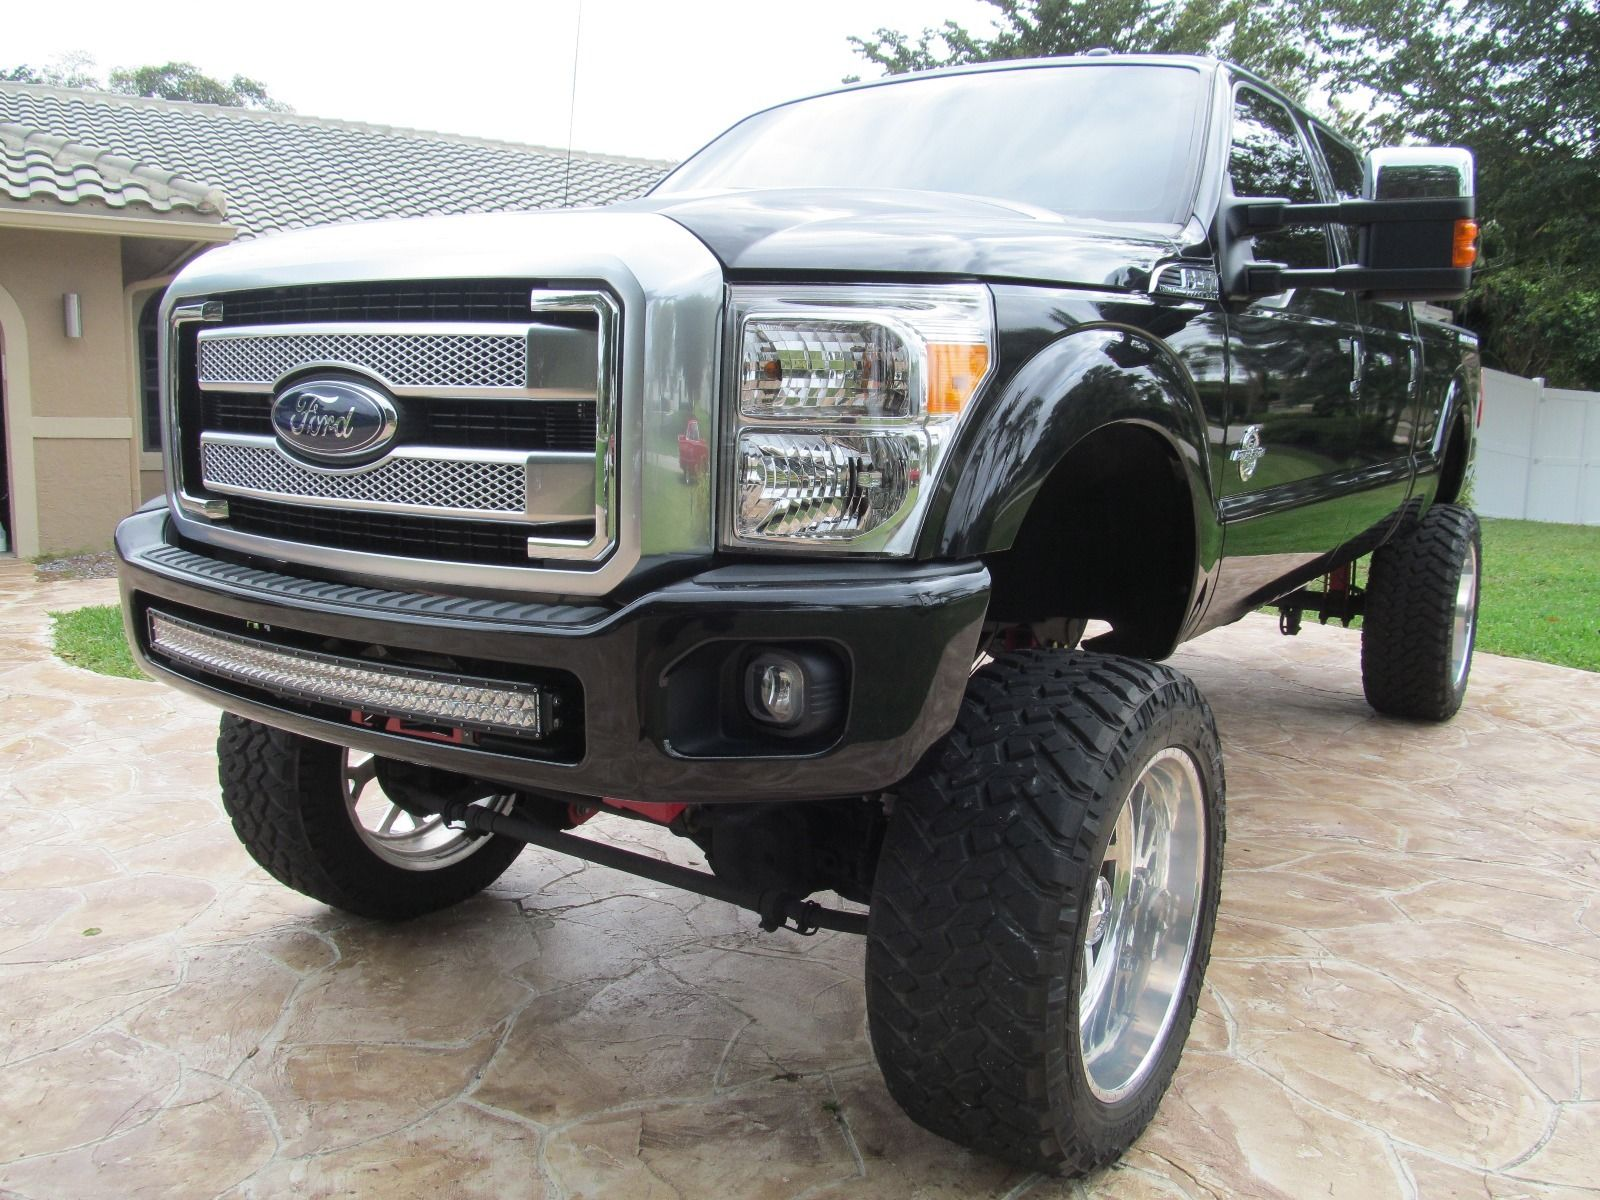 Lifted Monster Show Truck: 2015 Ford F-250 Platinum